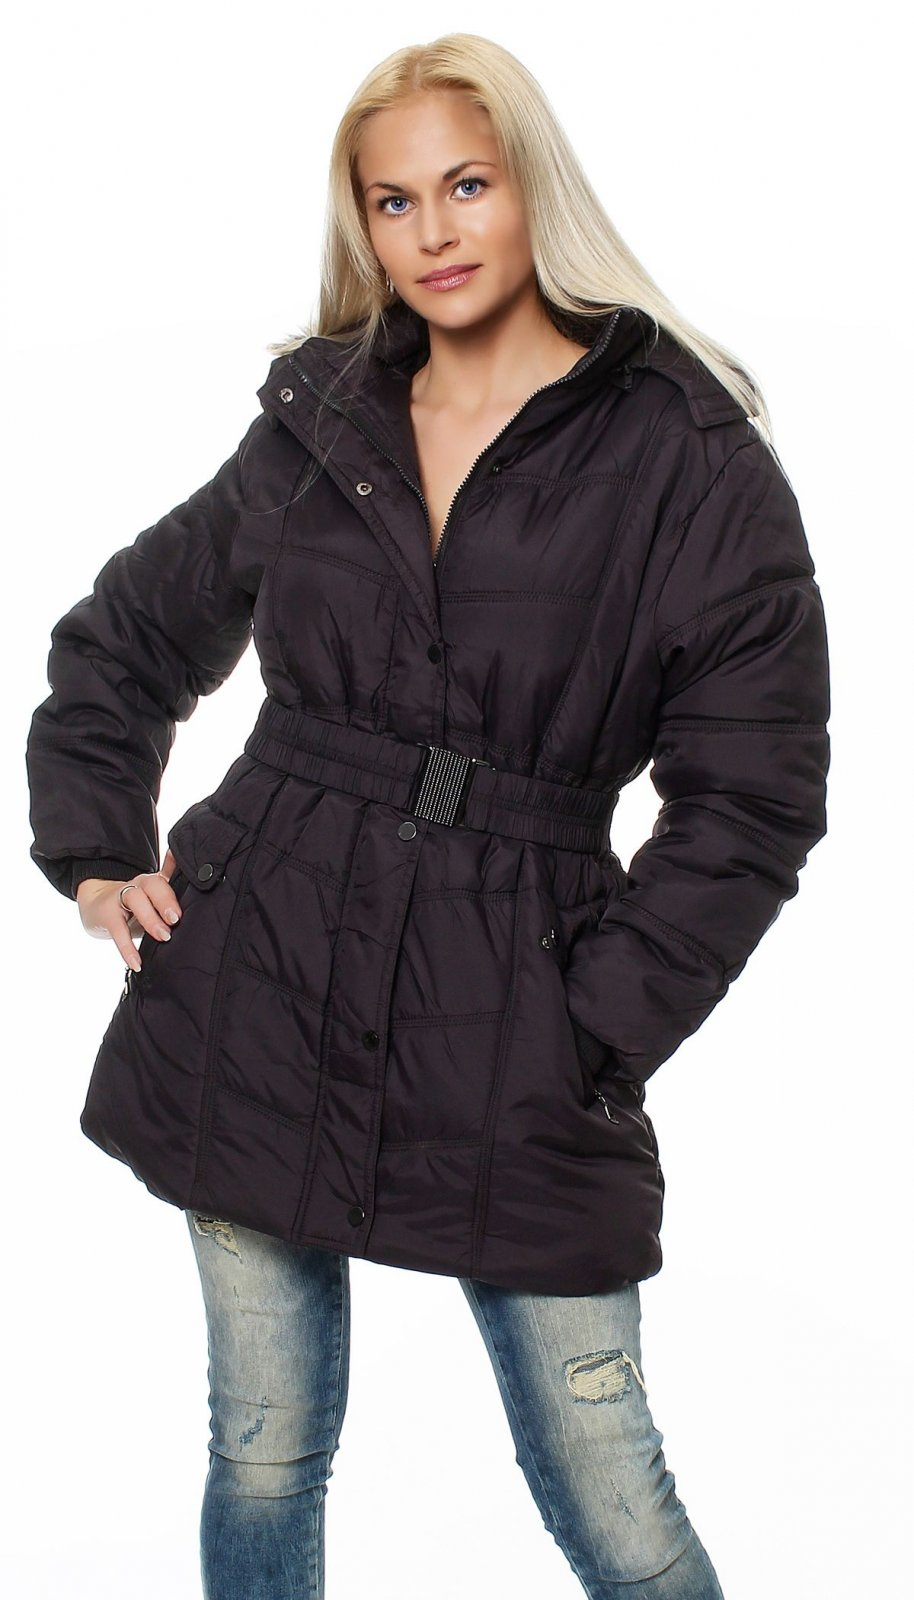 damen jacke parka bergangsjacke winterjacke wintermantel. Black Bedroom Furniture Sets. Home Design Ideas